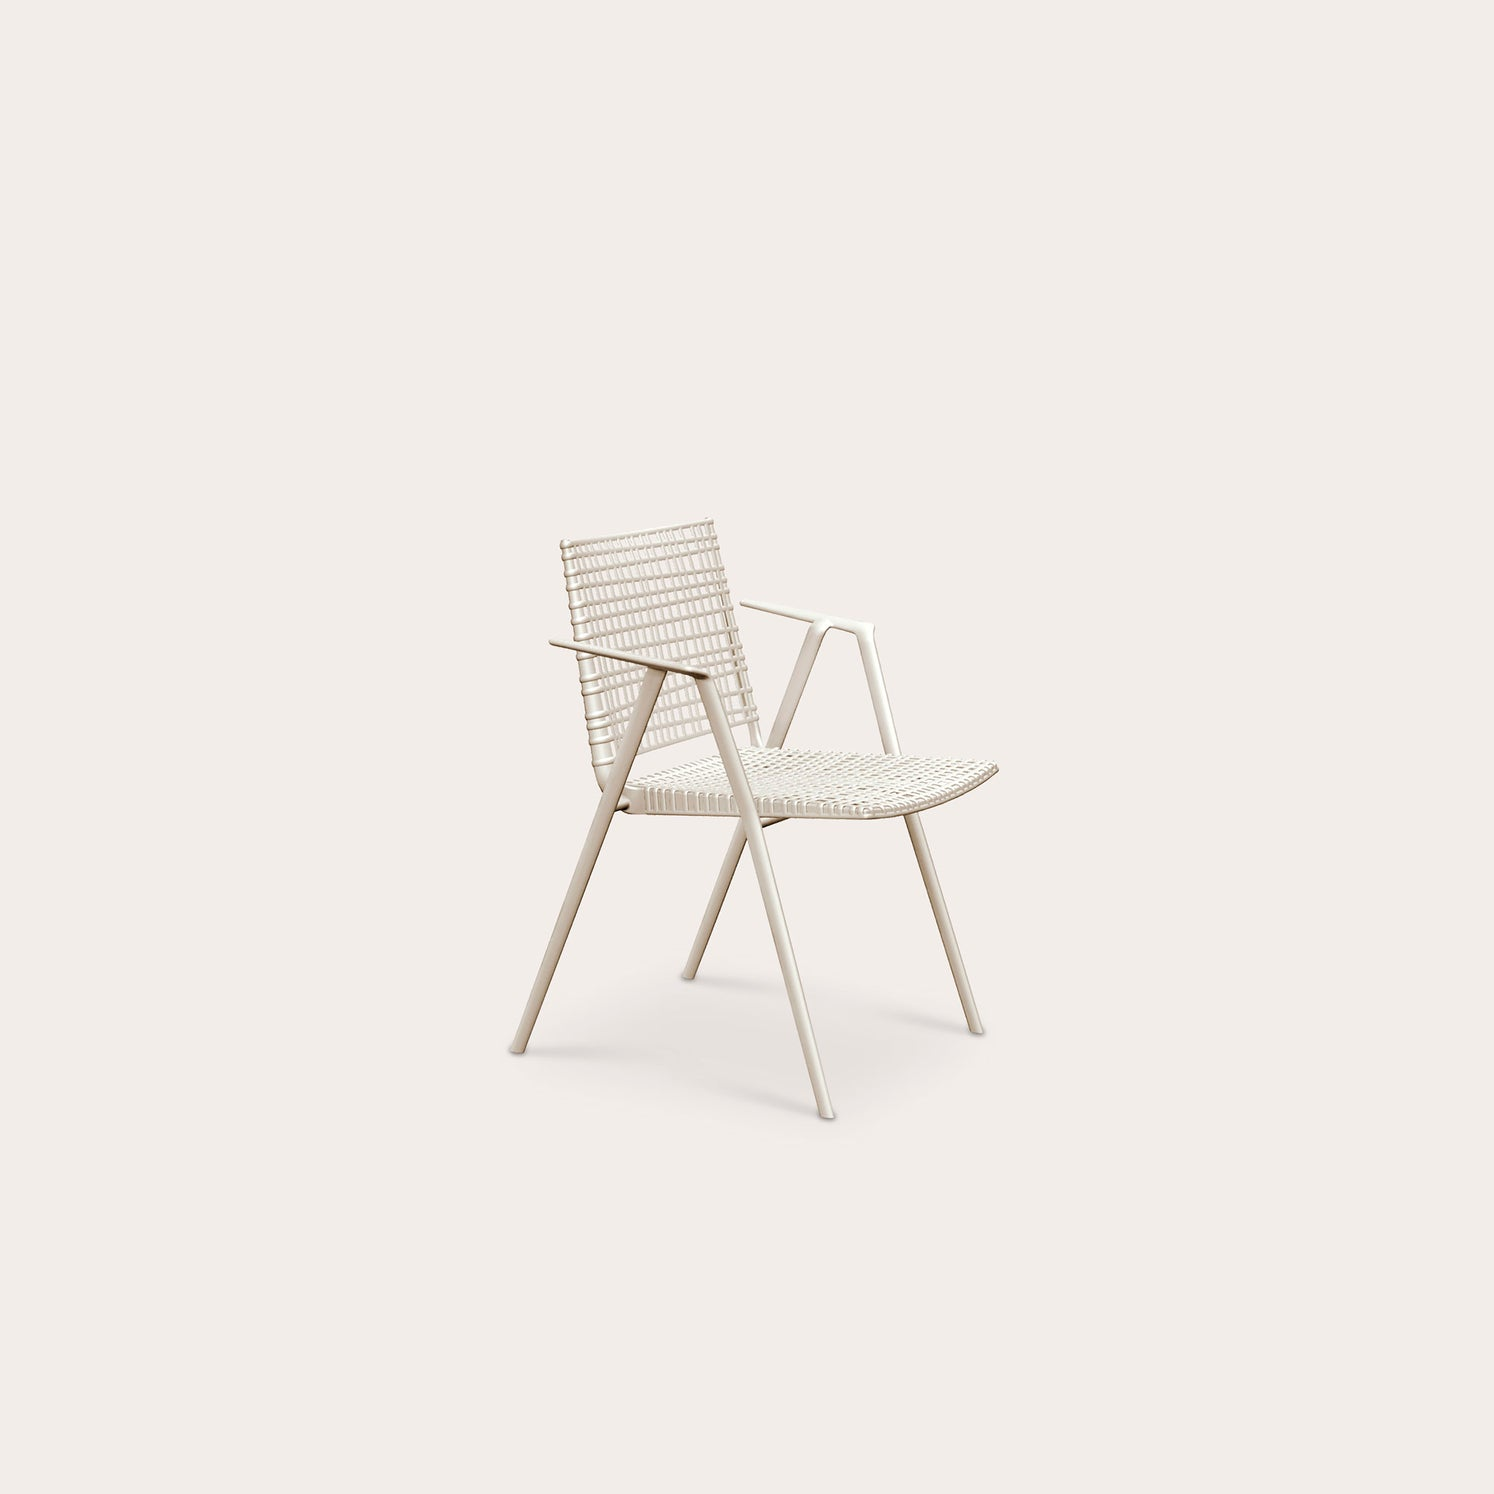 BRANCH Armchair Outdoor Altherr Lievore Molina Designer Furniture Sku: 007-200-10753